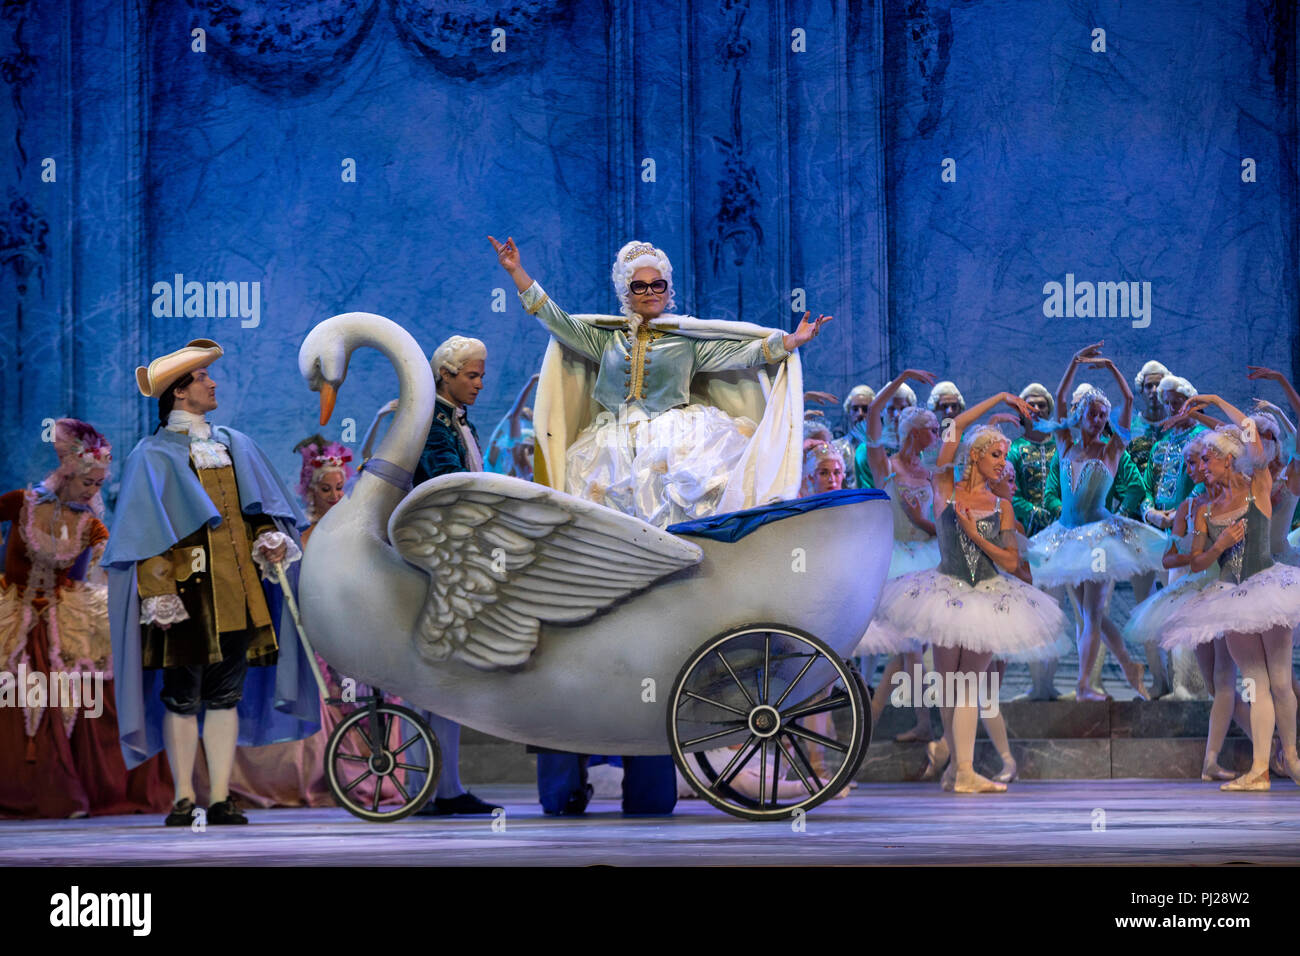 Moscow, Russia. 3rd September 2018 Italian actress Ornella Muti as Empress Anna of Russia, performs in a scene from the Crystal Palace international opera-ballet production based on music by American-Maltese composer Alexey Shor and staged at the State Kremlin Palace in Moscow Credit: Nikolay Vinokurov/Alamy Live News Stock Photo